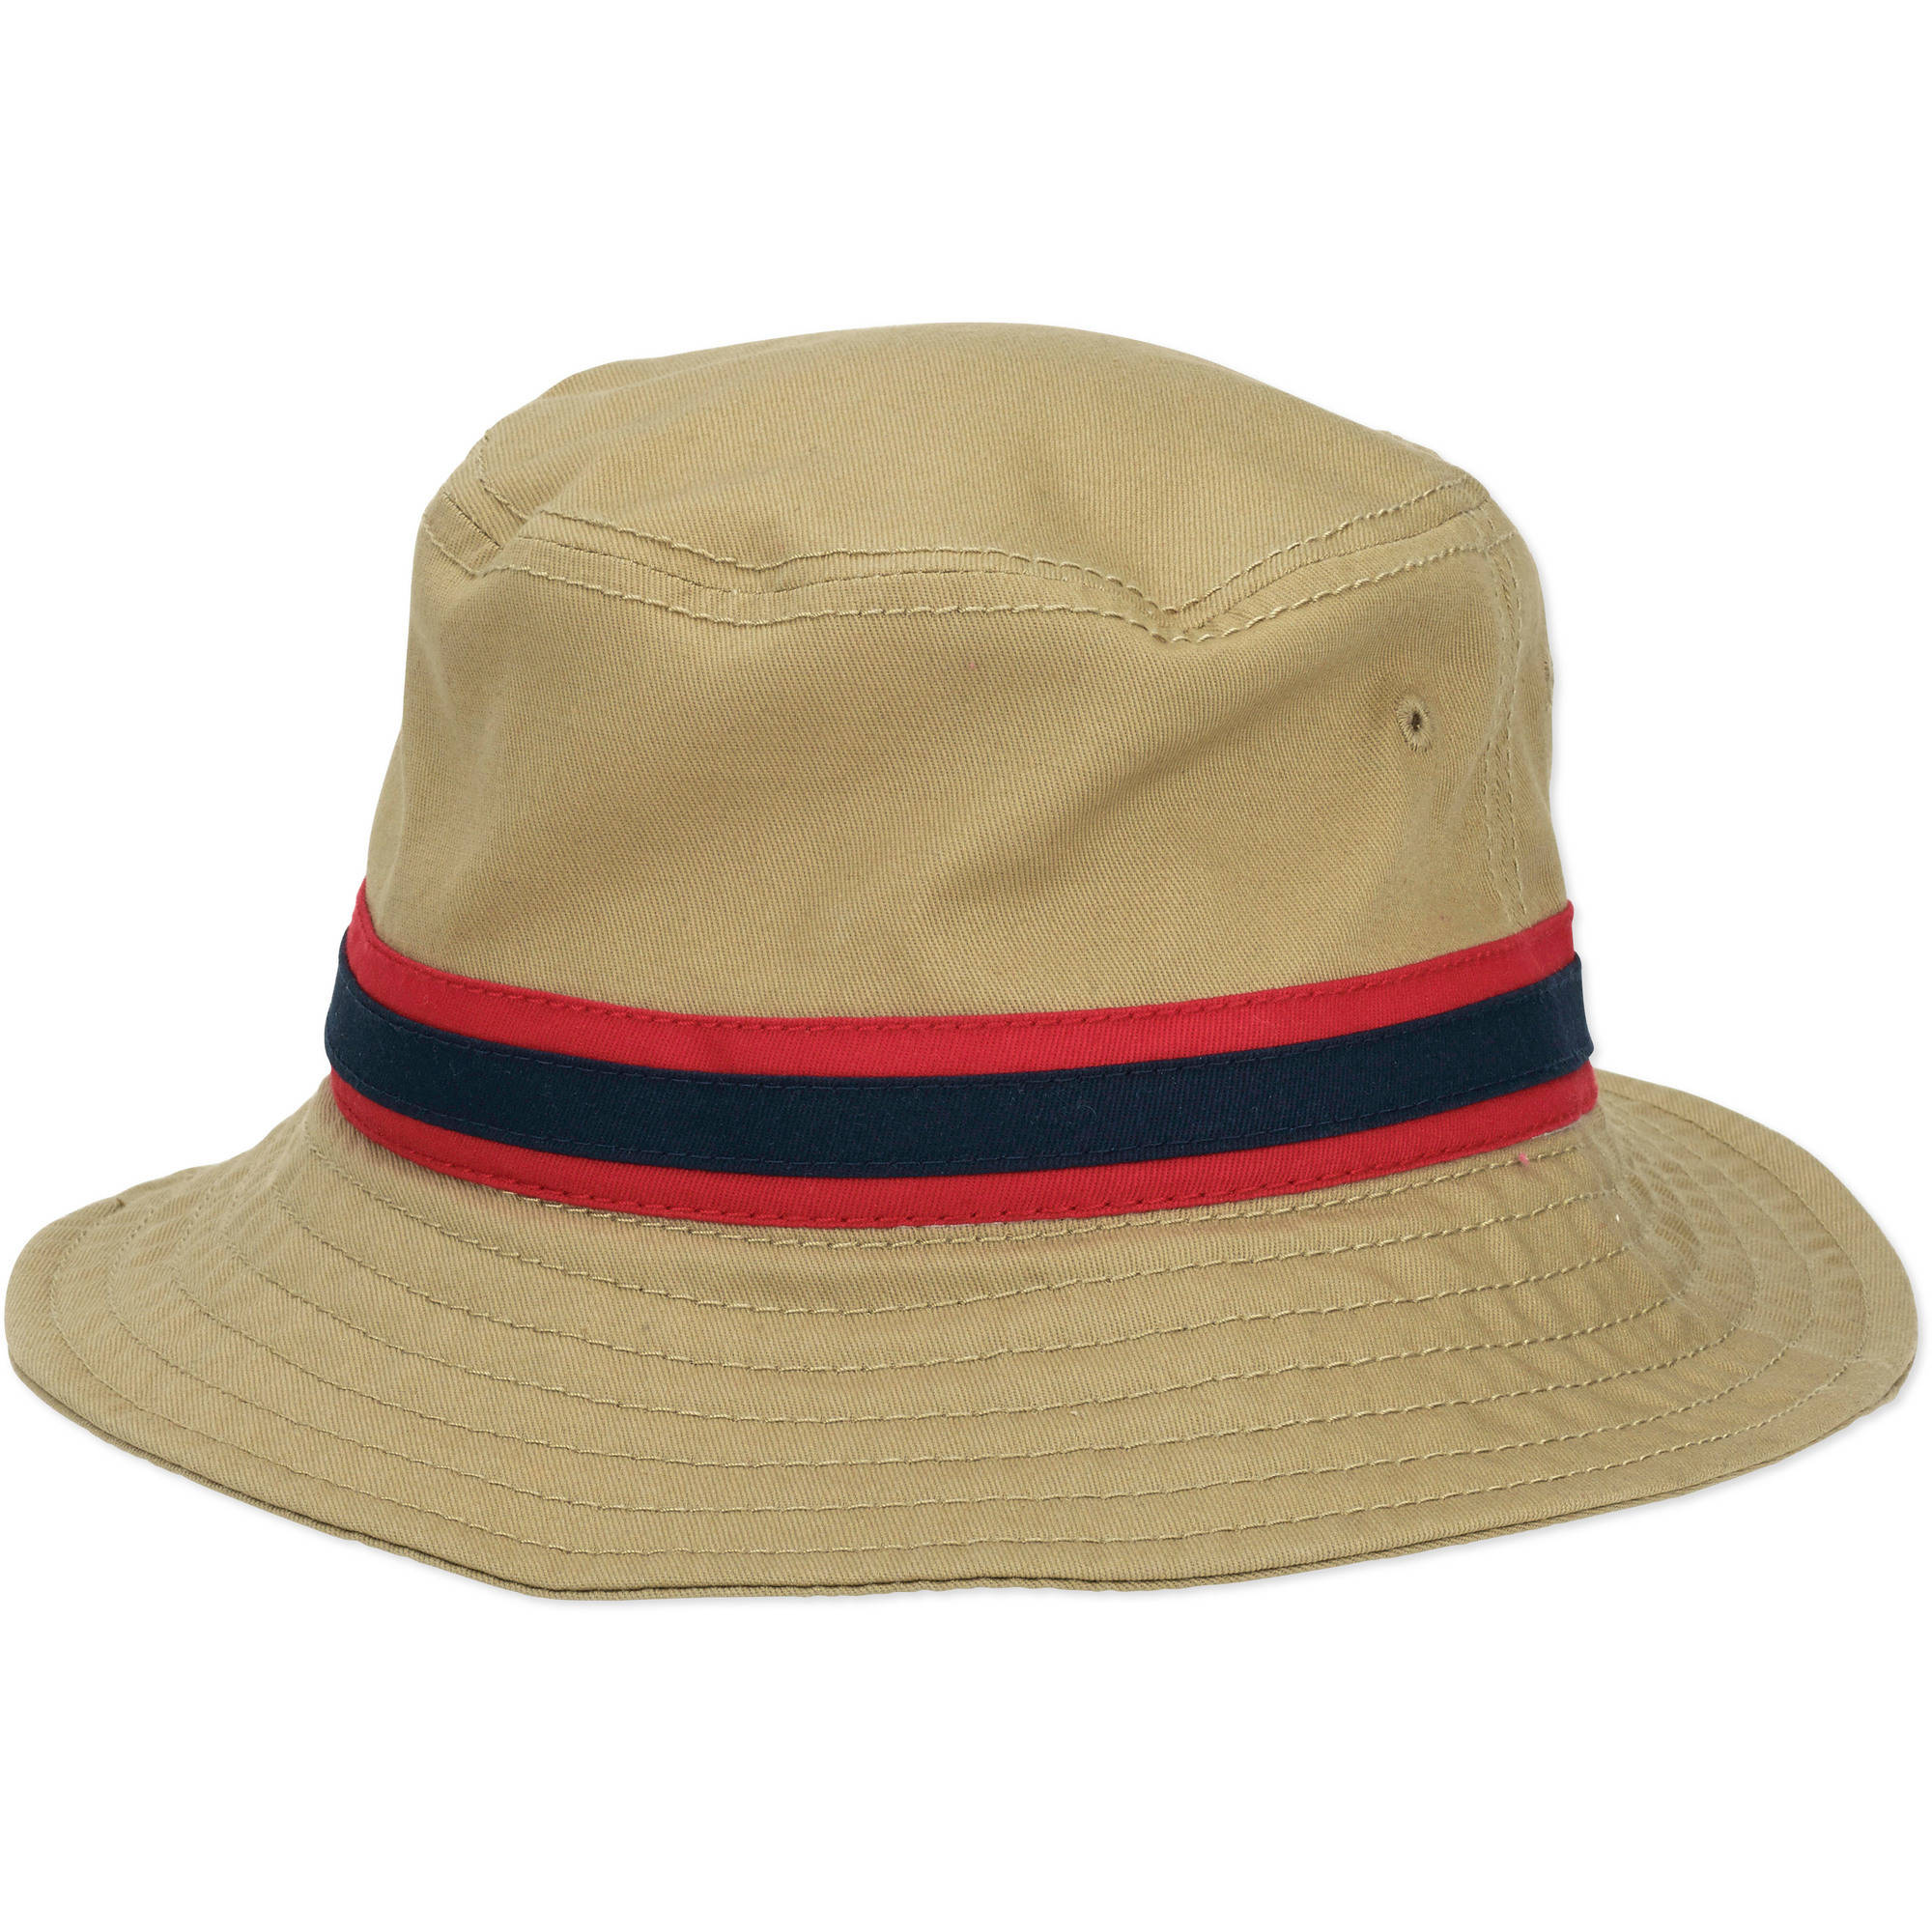 how to make your own bucket hat